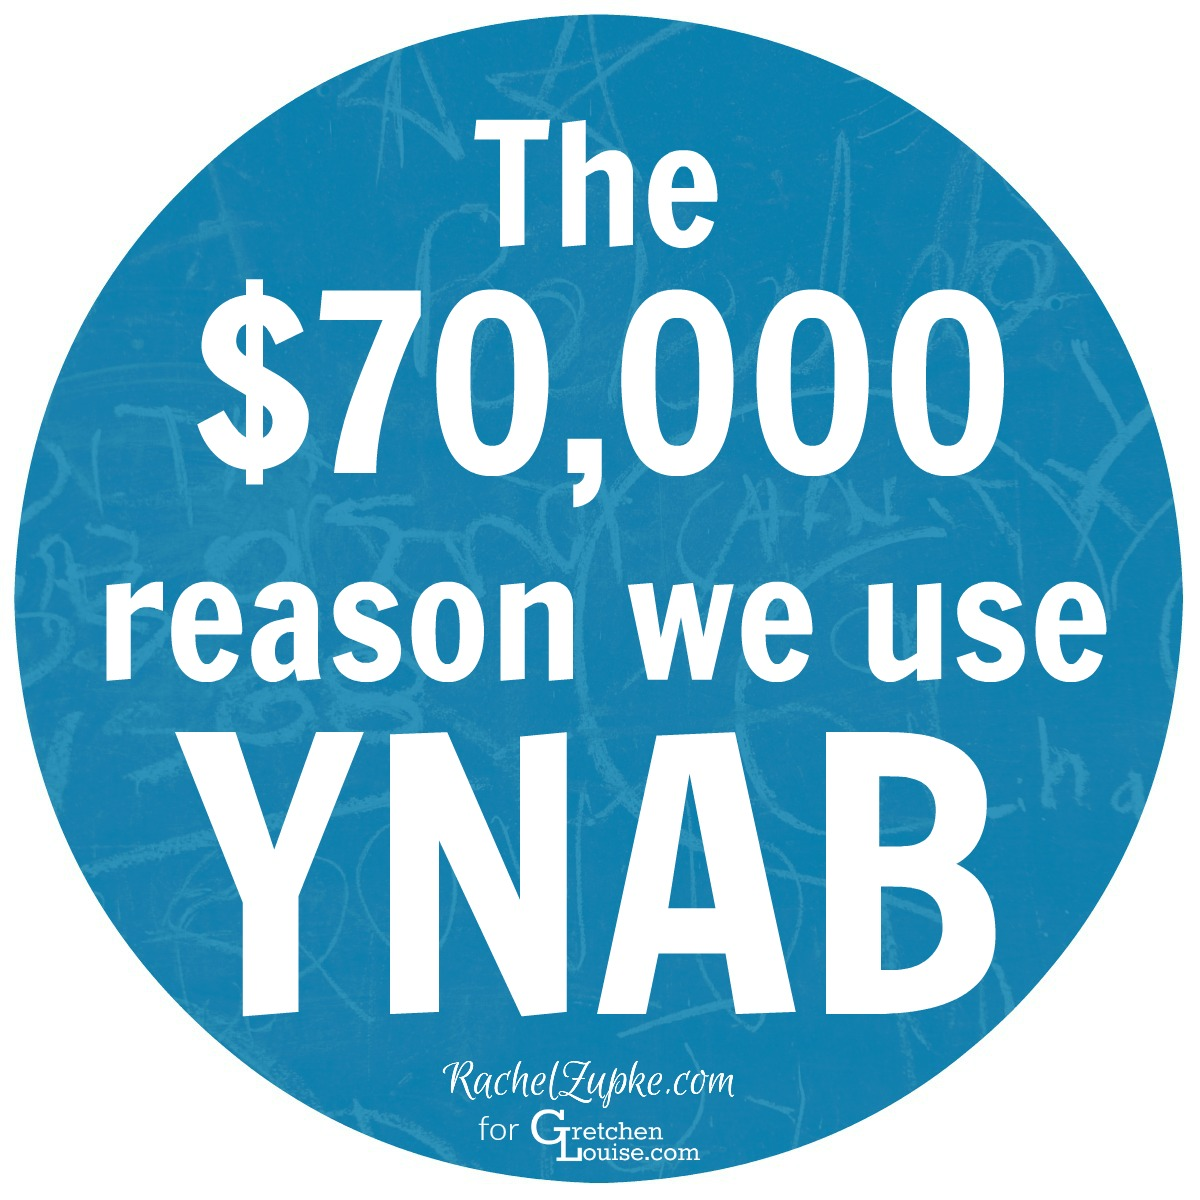 The $70,000 reason we use YNAB.